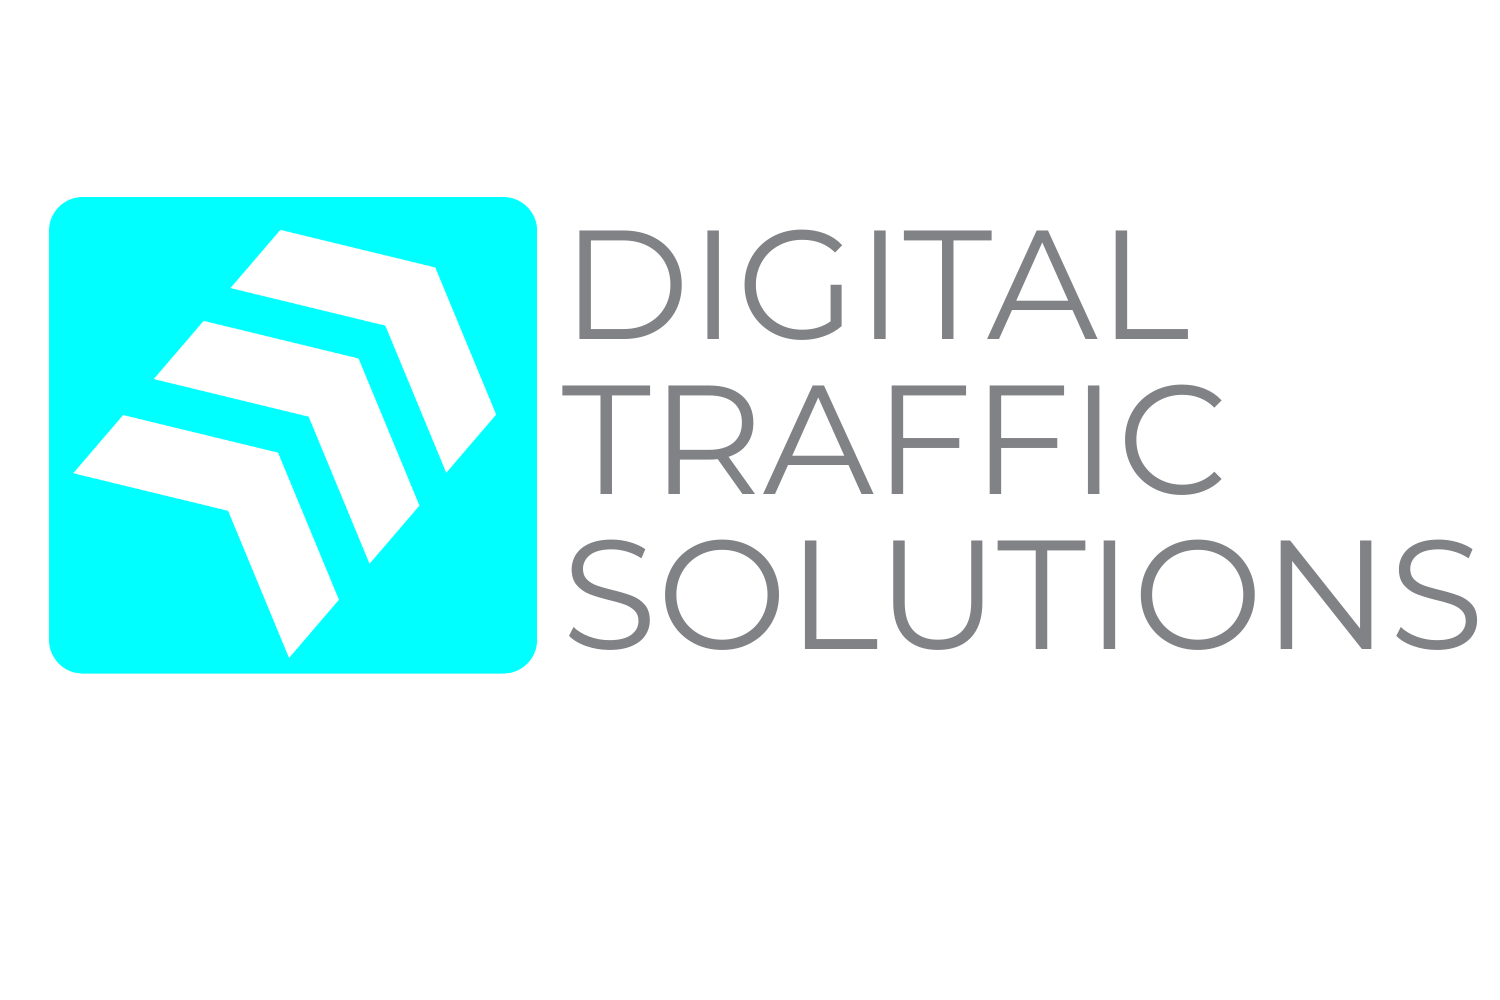 Digital marketing, Search engine optimization (SEO) - Agency - Digital Traffic Solutions